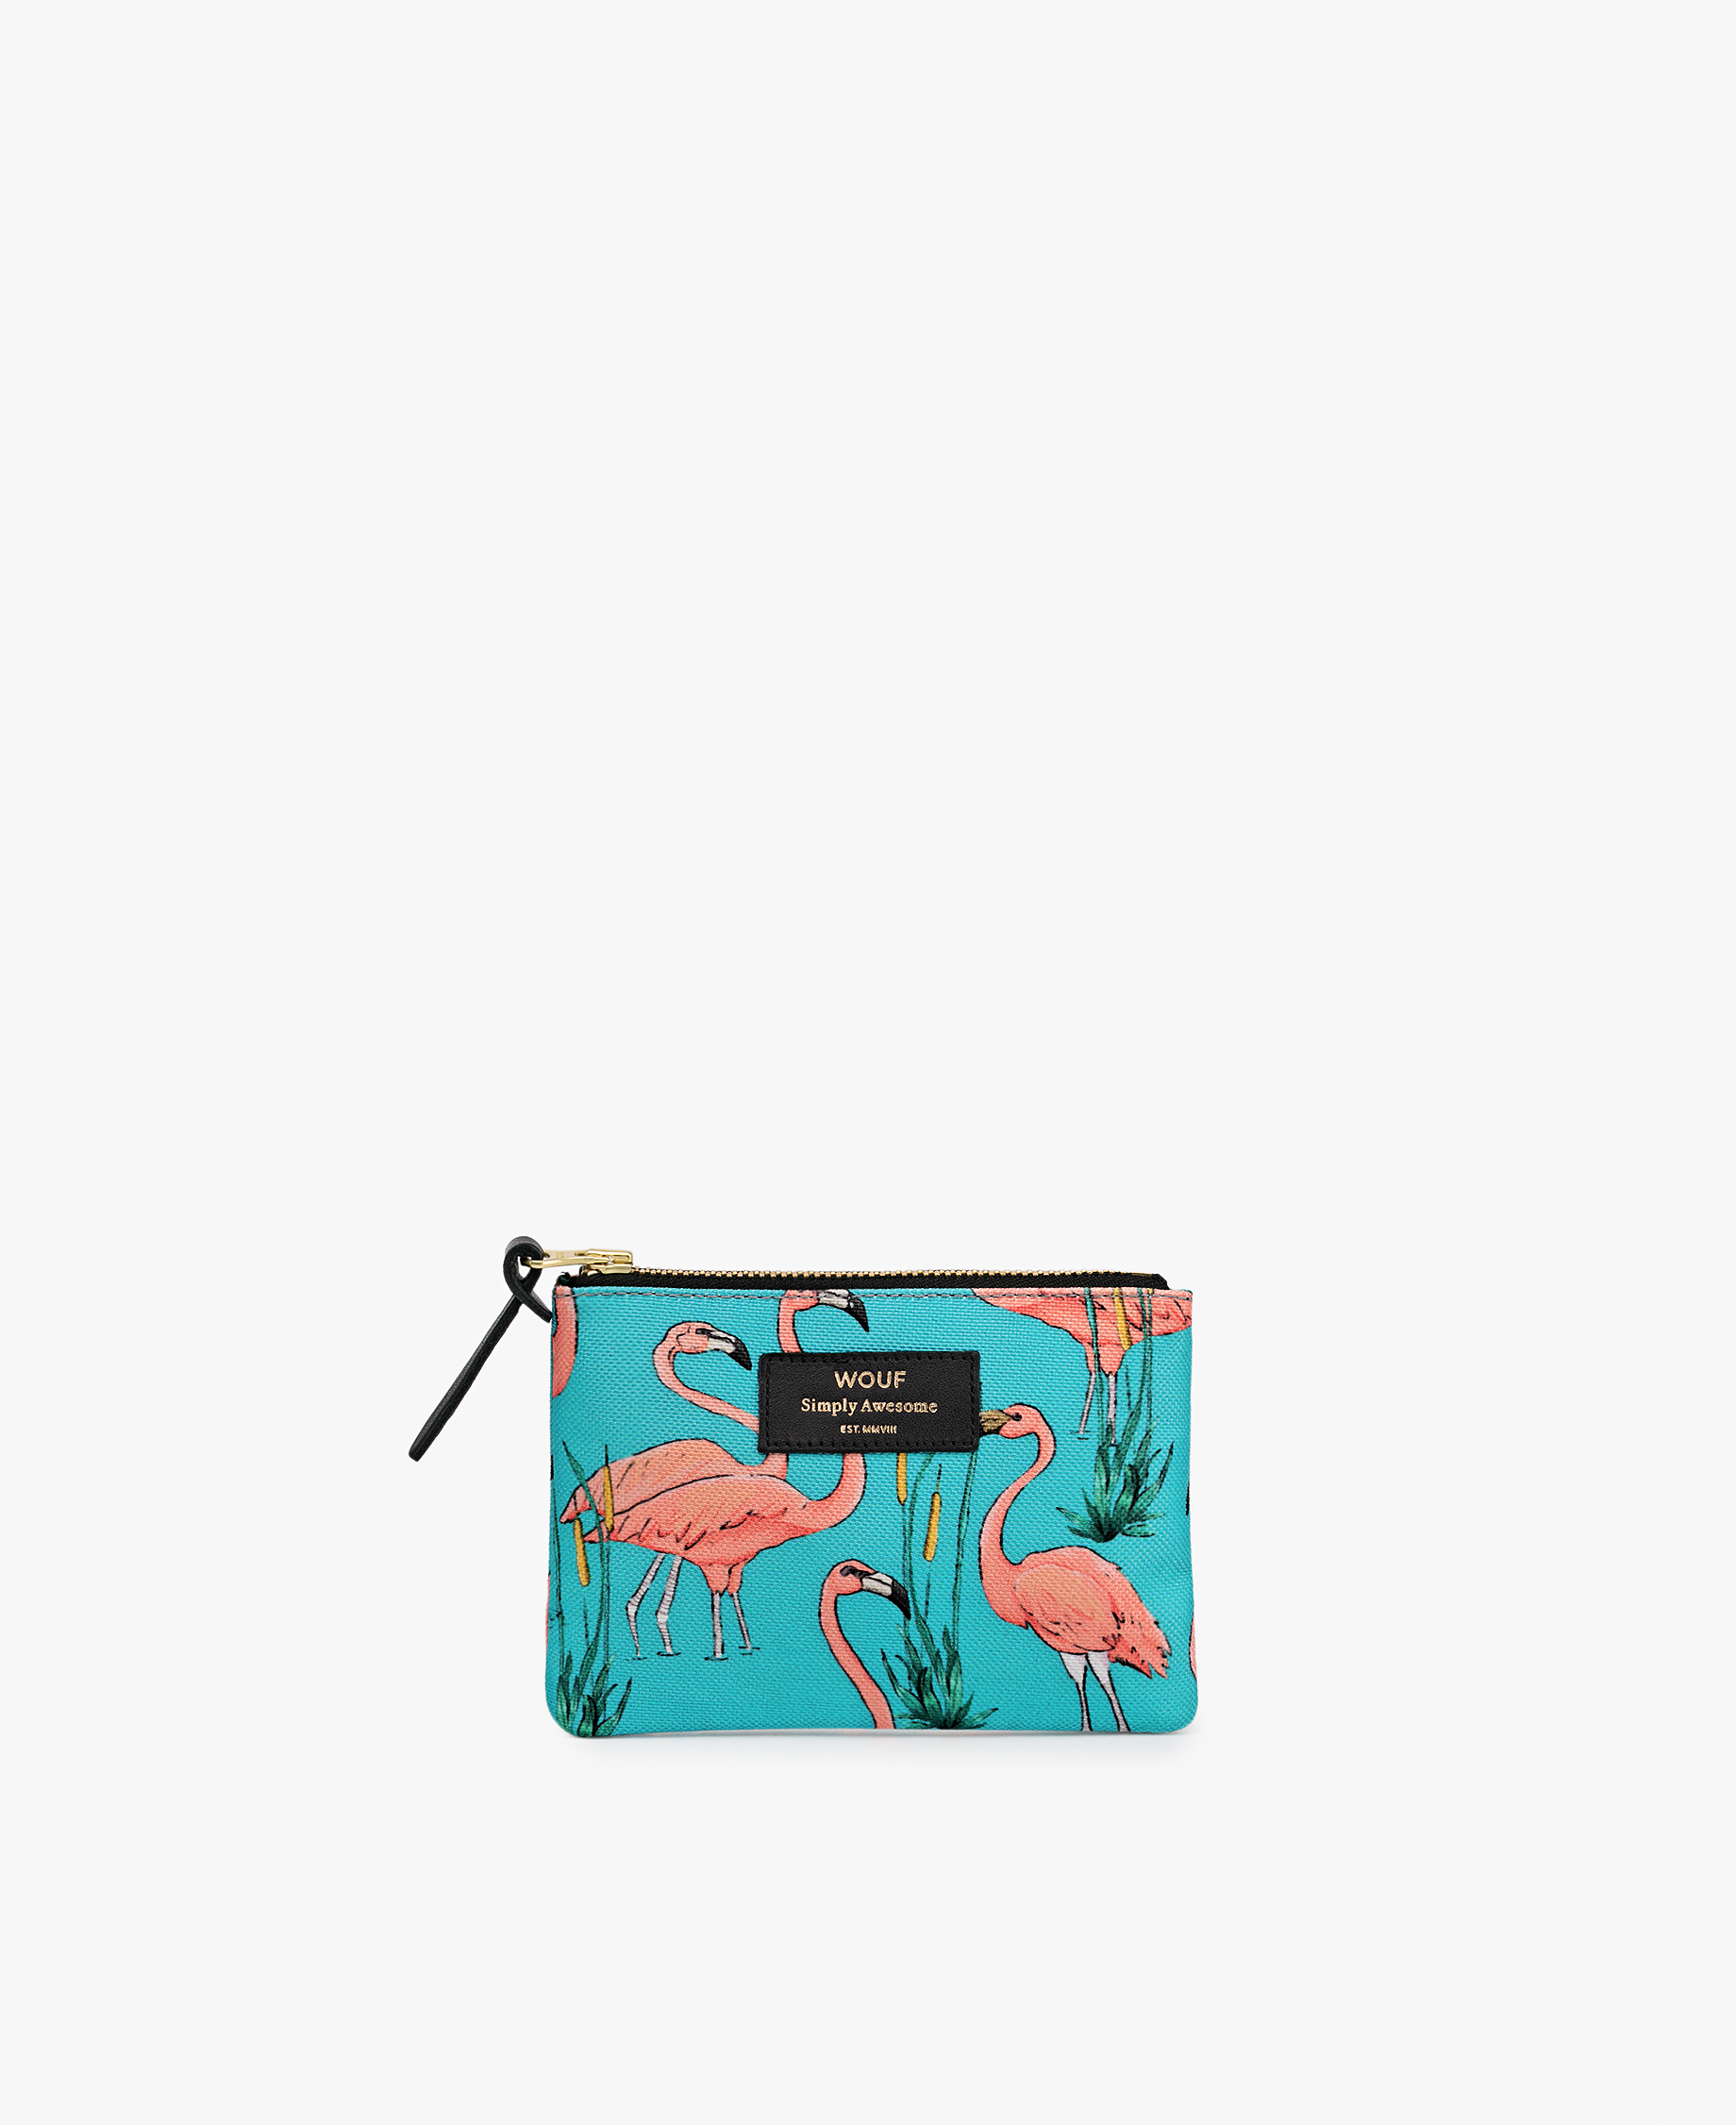 fashionable pouch bag